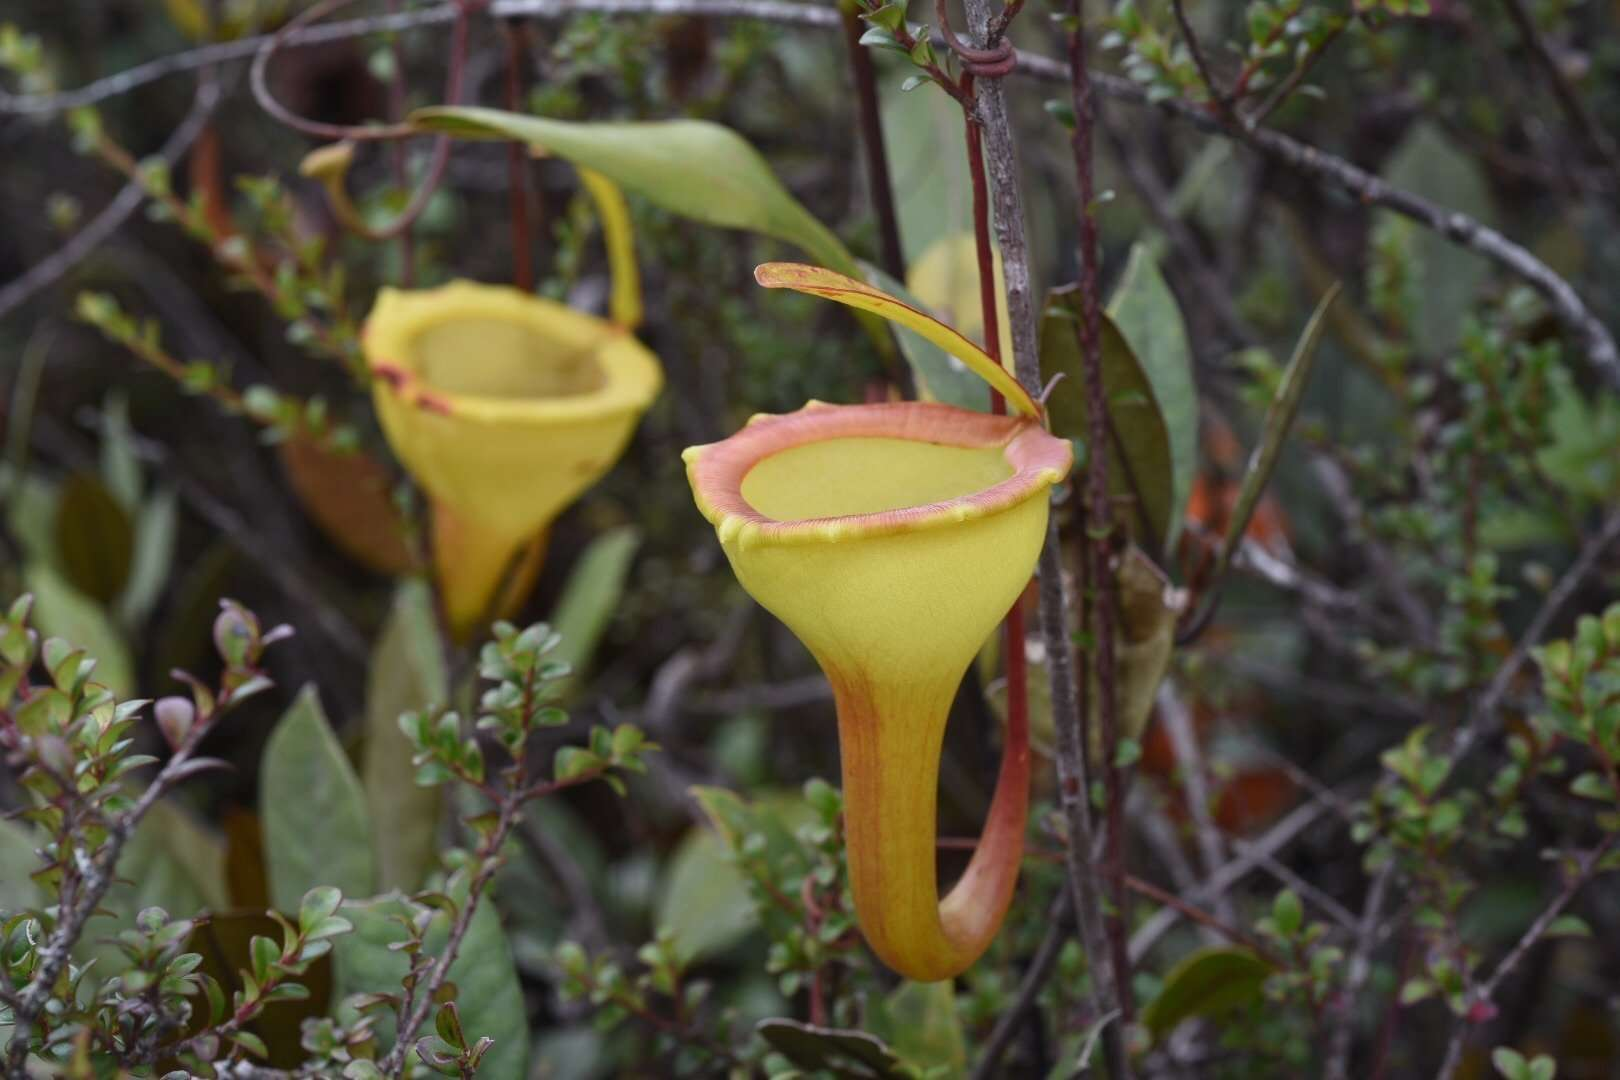 Adult Nepenthes jamban